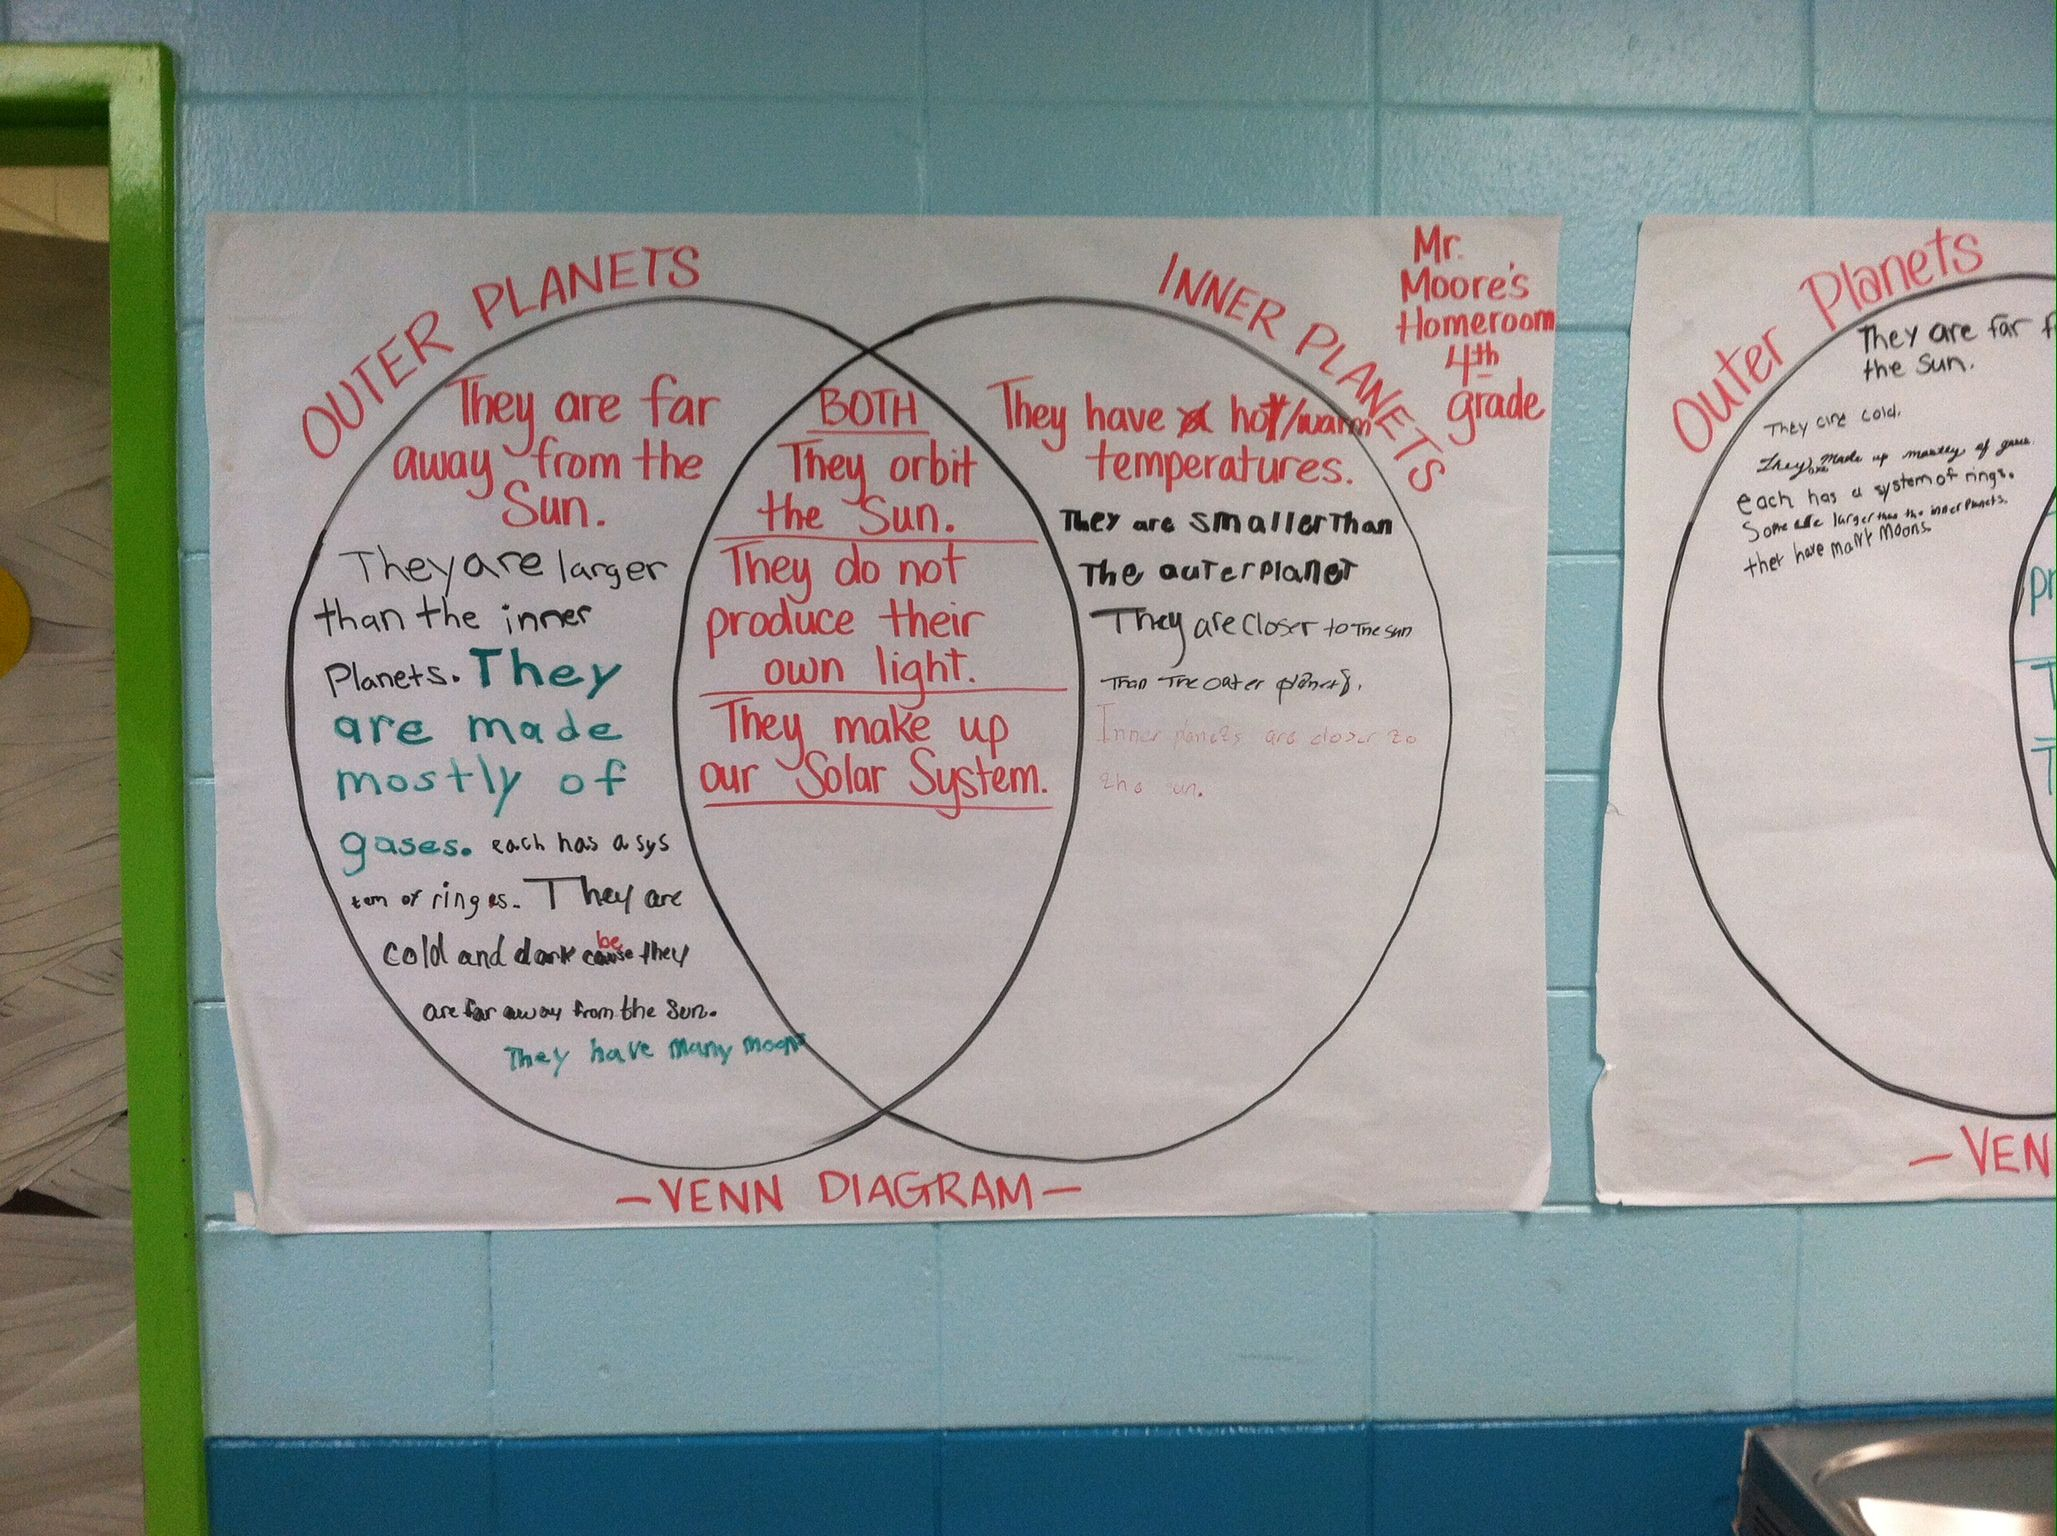 kinetic and potential energy venn diagram wiring for a delco car radio comparing inner outer planets page 2 pics about space